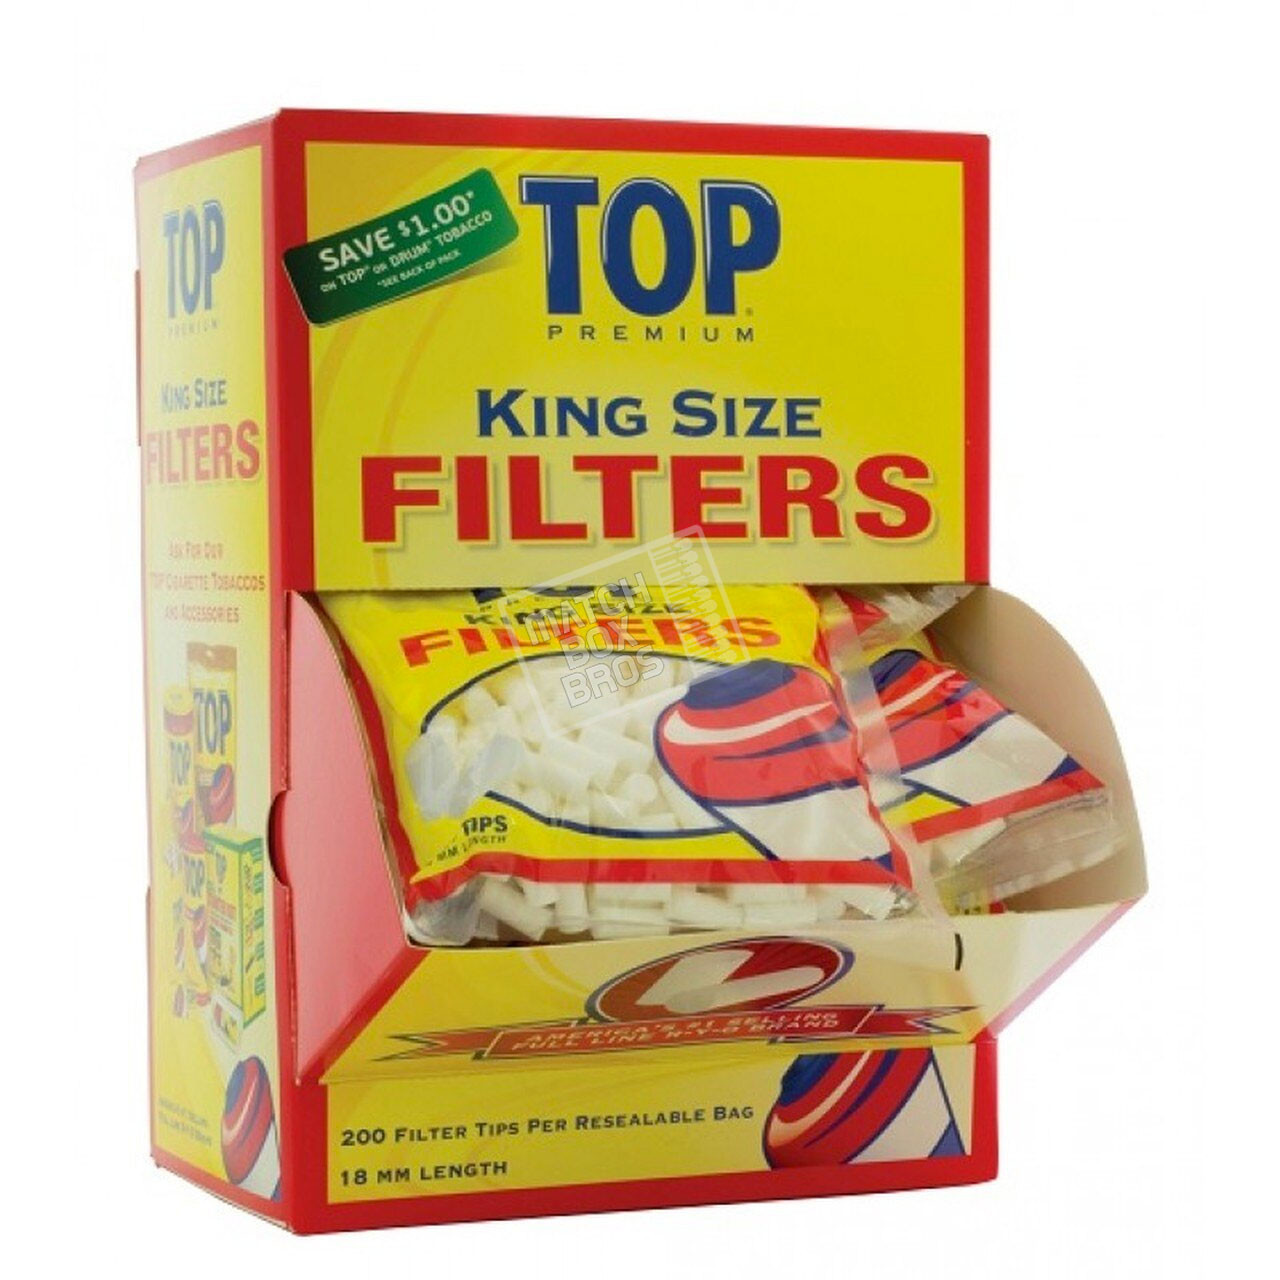 Top Filter Tip King Size (18mm)